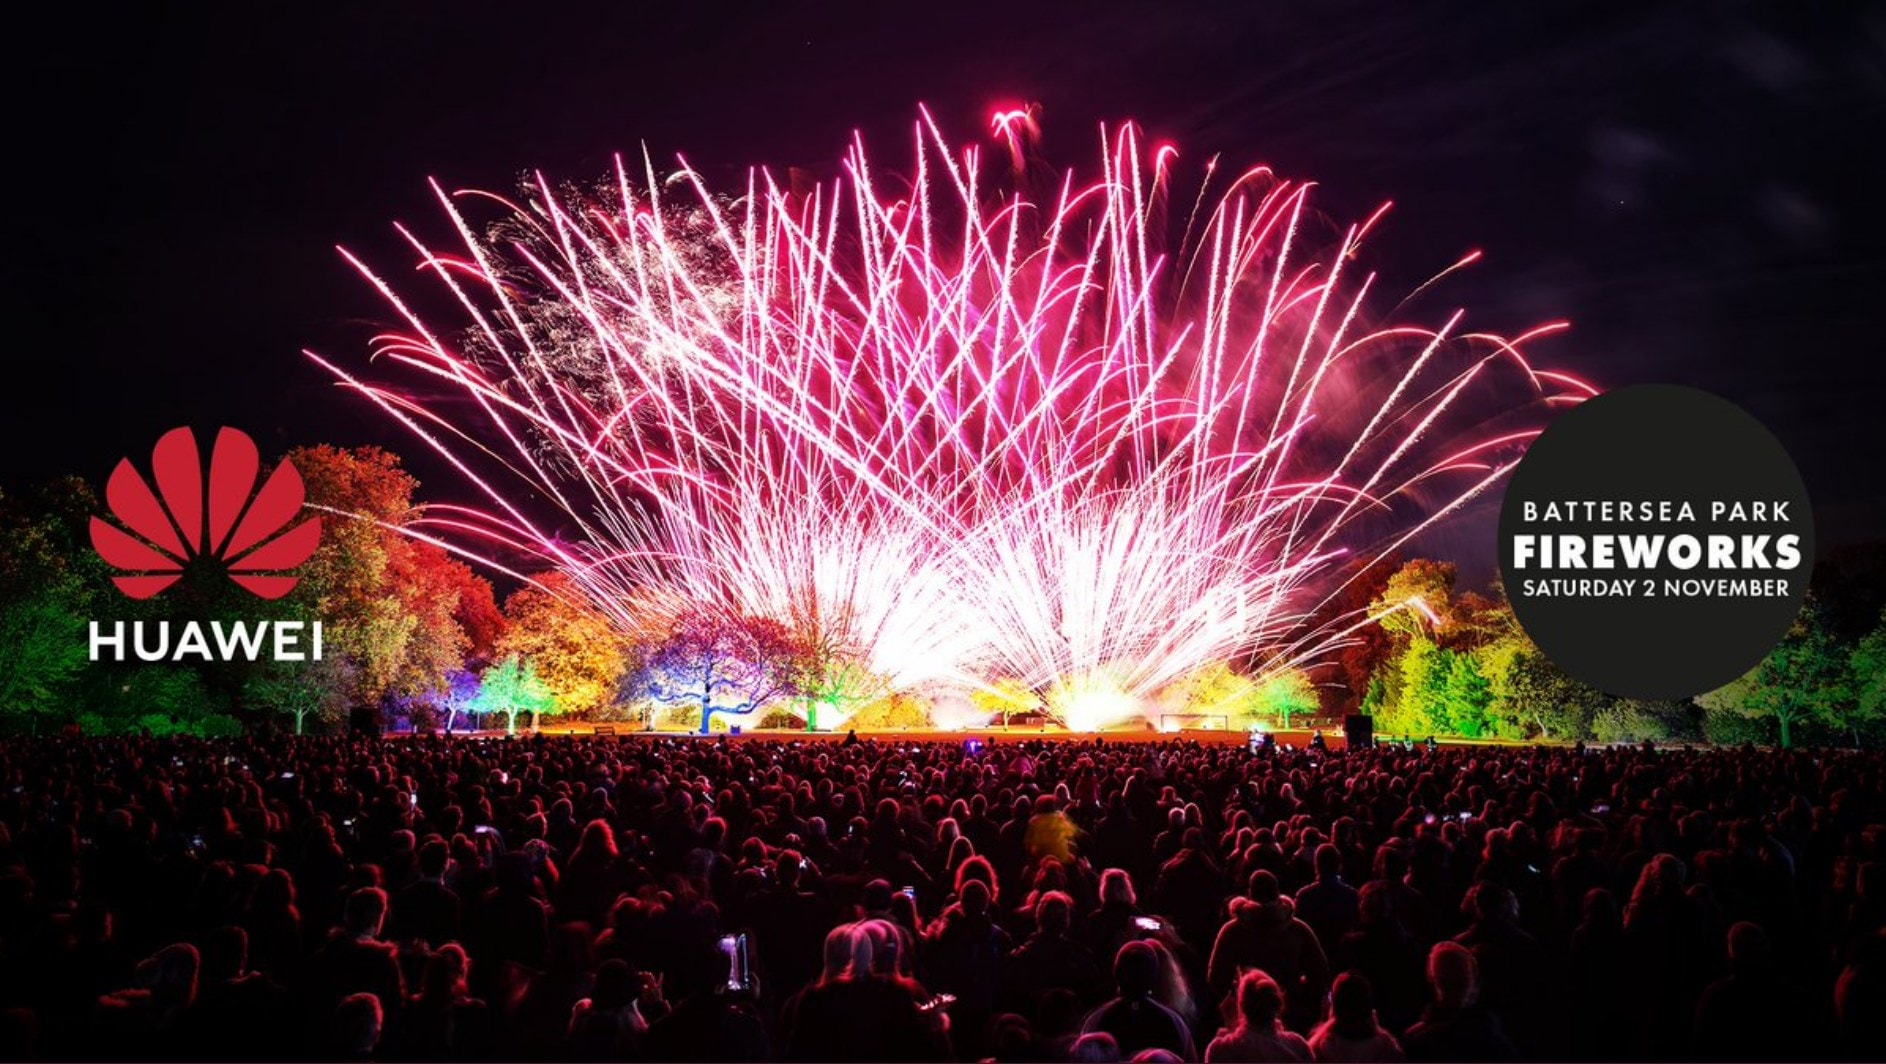 Win 1 of 200 pairs of tickets for the Battersea Park Fireworks 2019 with Rudimental thanks to Huawei